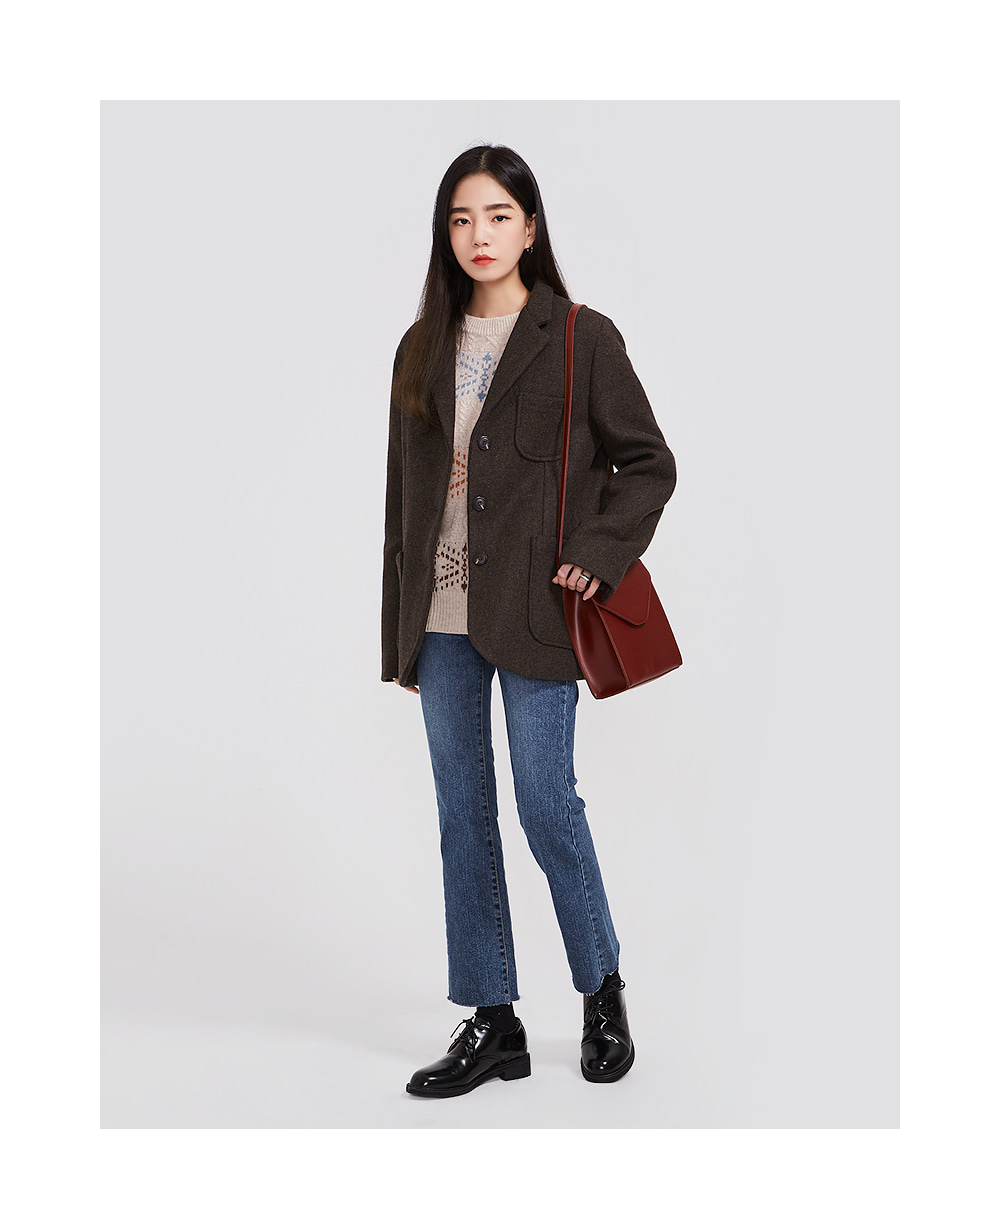 clearly boots cut pants (s, m, l)